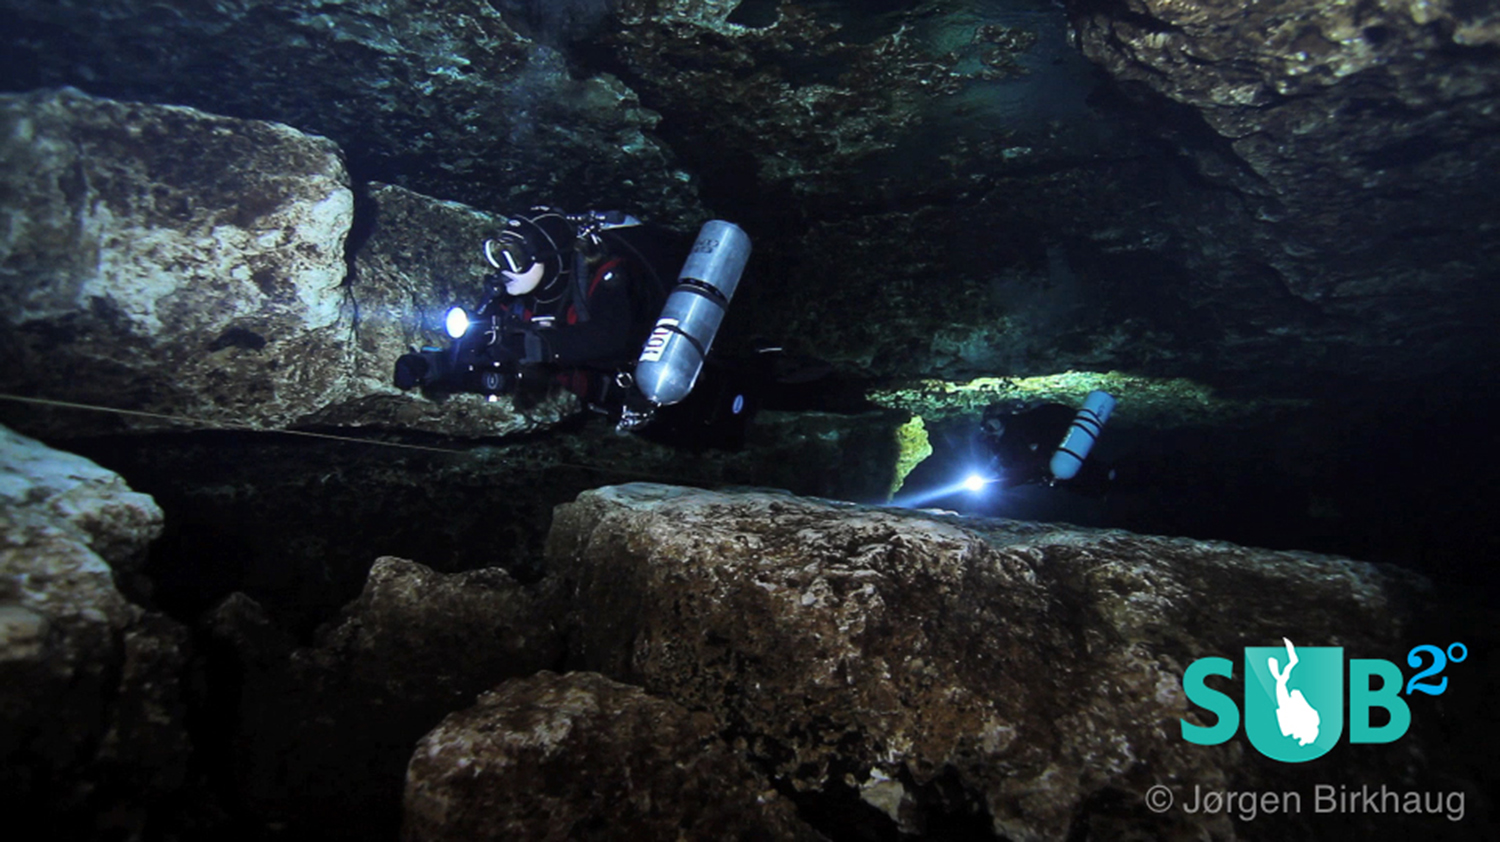 A team of cave divers approaching The Lips in Devil's Eye Cave.